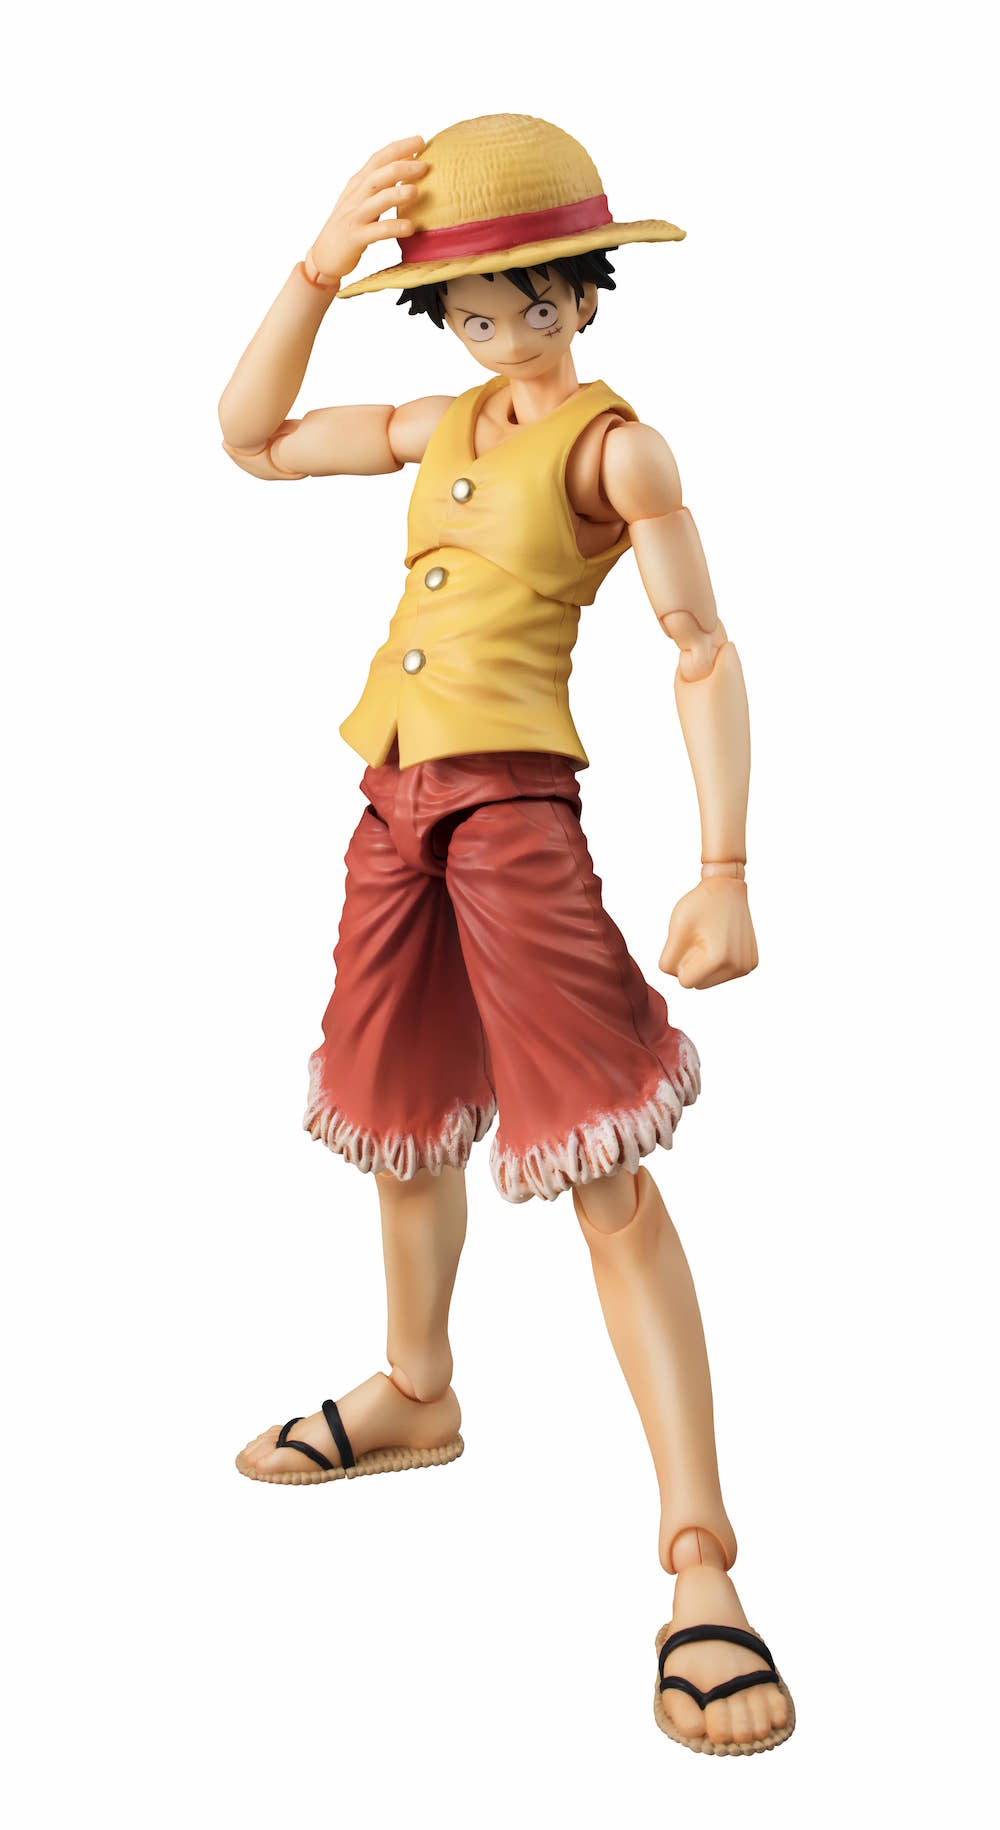 MONKEY D. LUFFY VER. AMARILLO FIGURA 16.5 CM ONE PIECE EAST BLUE VARIABLE ACTION HEROES